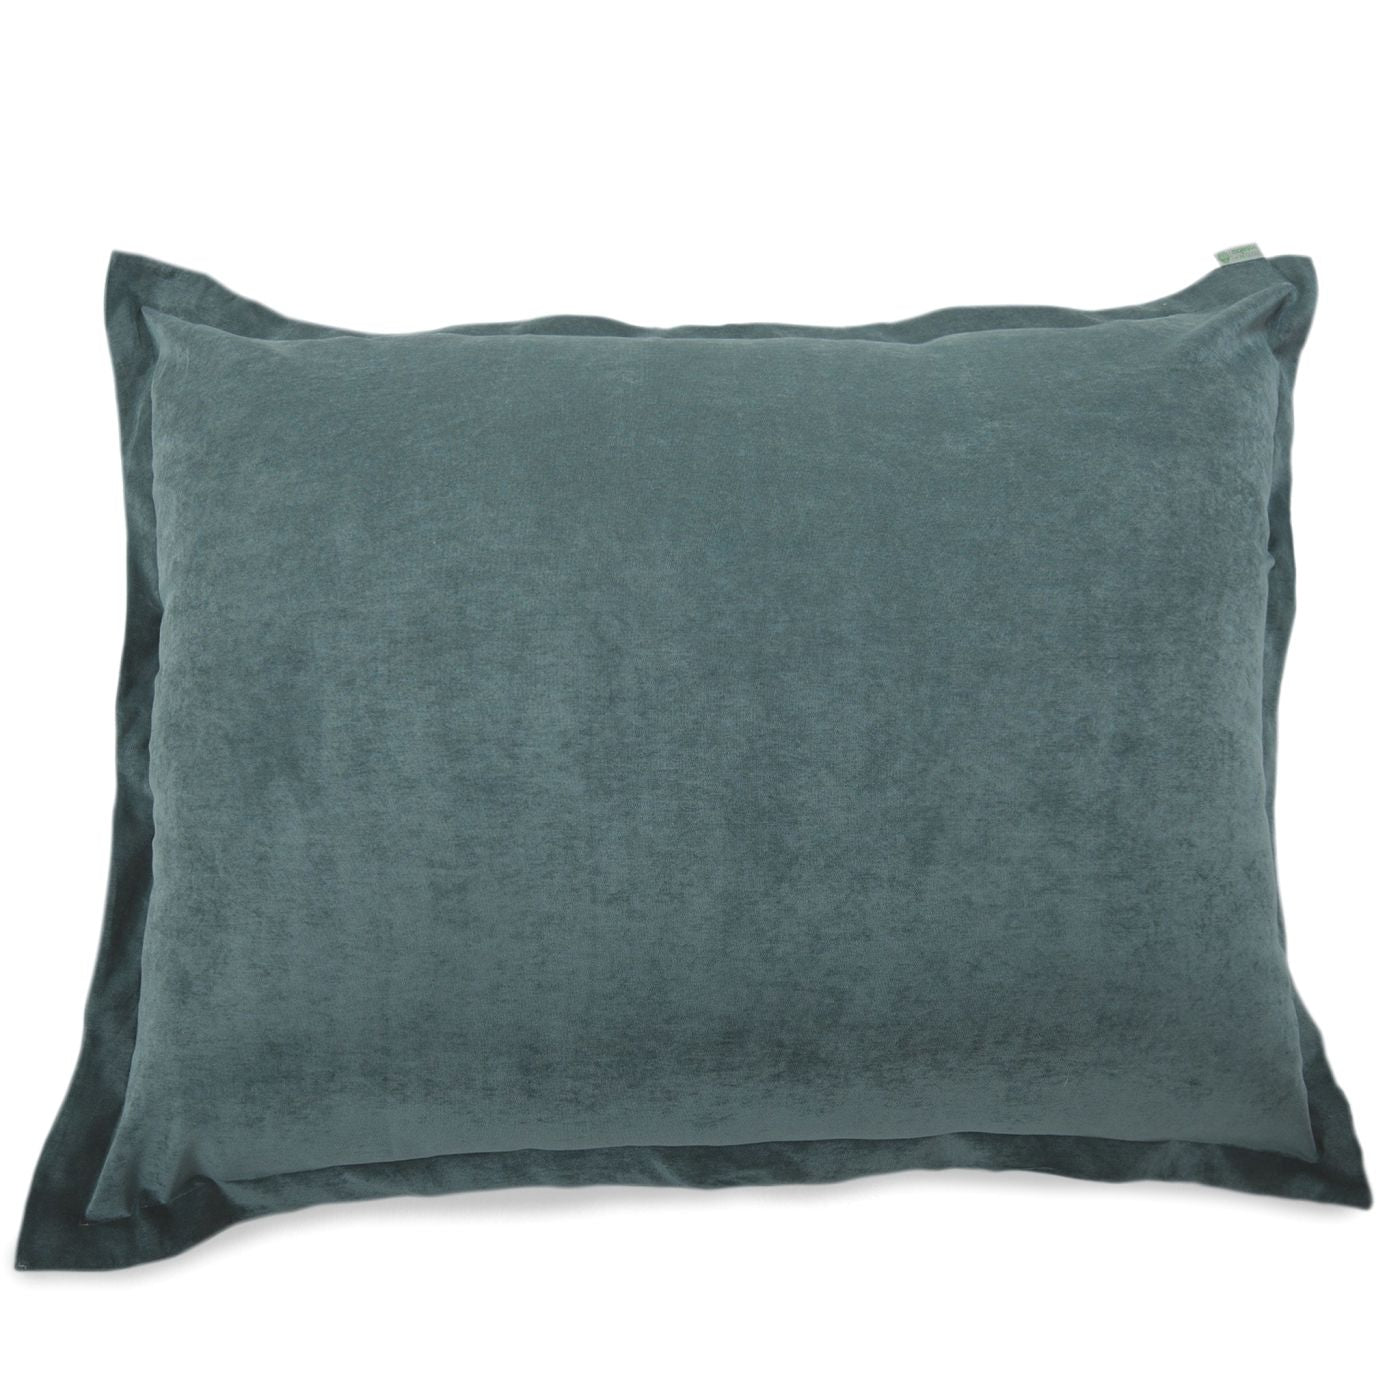 Hipcycle Floor Pillows : Majestic Home Villa Azure Floor Pillow 85907266027. Only $147.40 at Contemporary Furniture ...